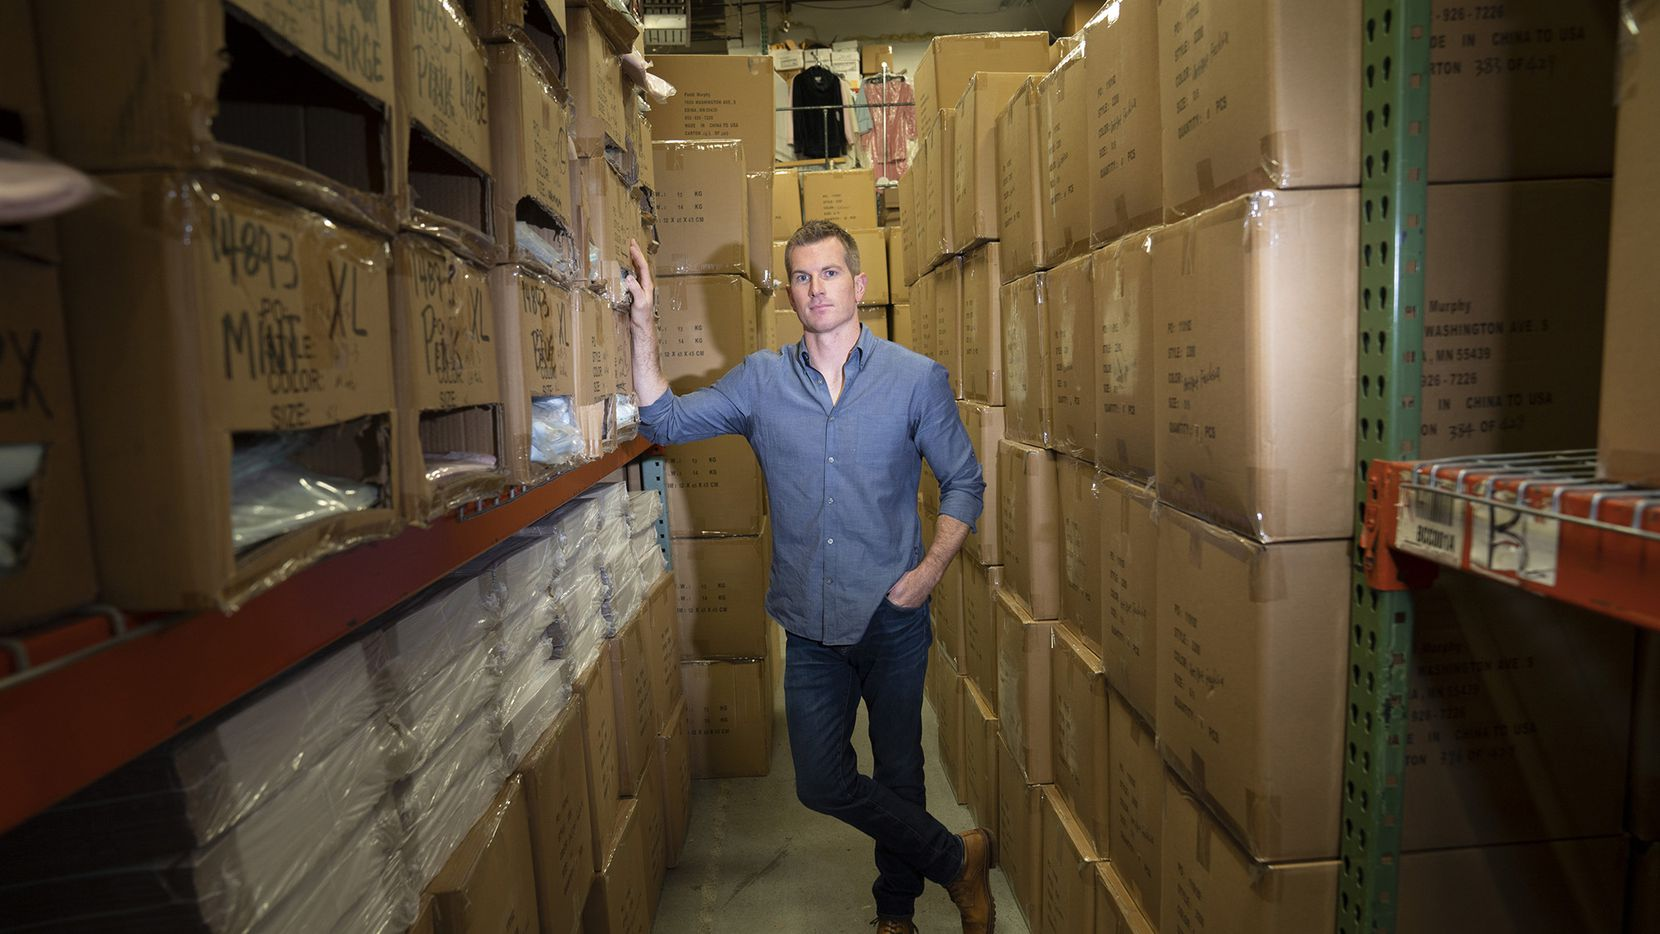 Tim Murphy, president of Softies, poses for a photo among stacked boxes in the company's Edina warehouse.